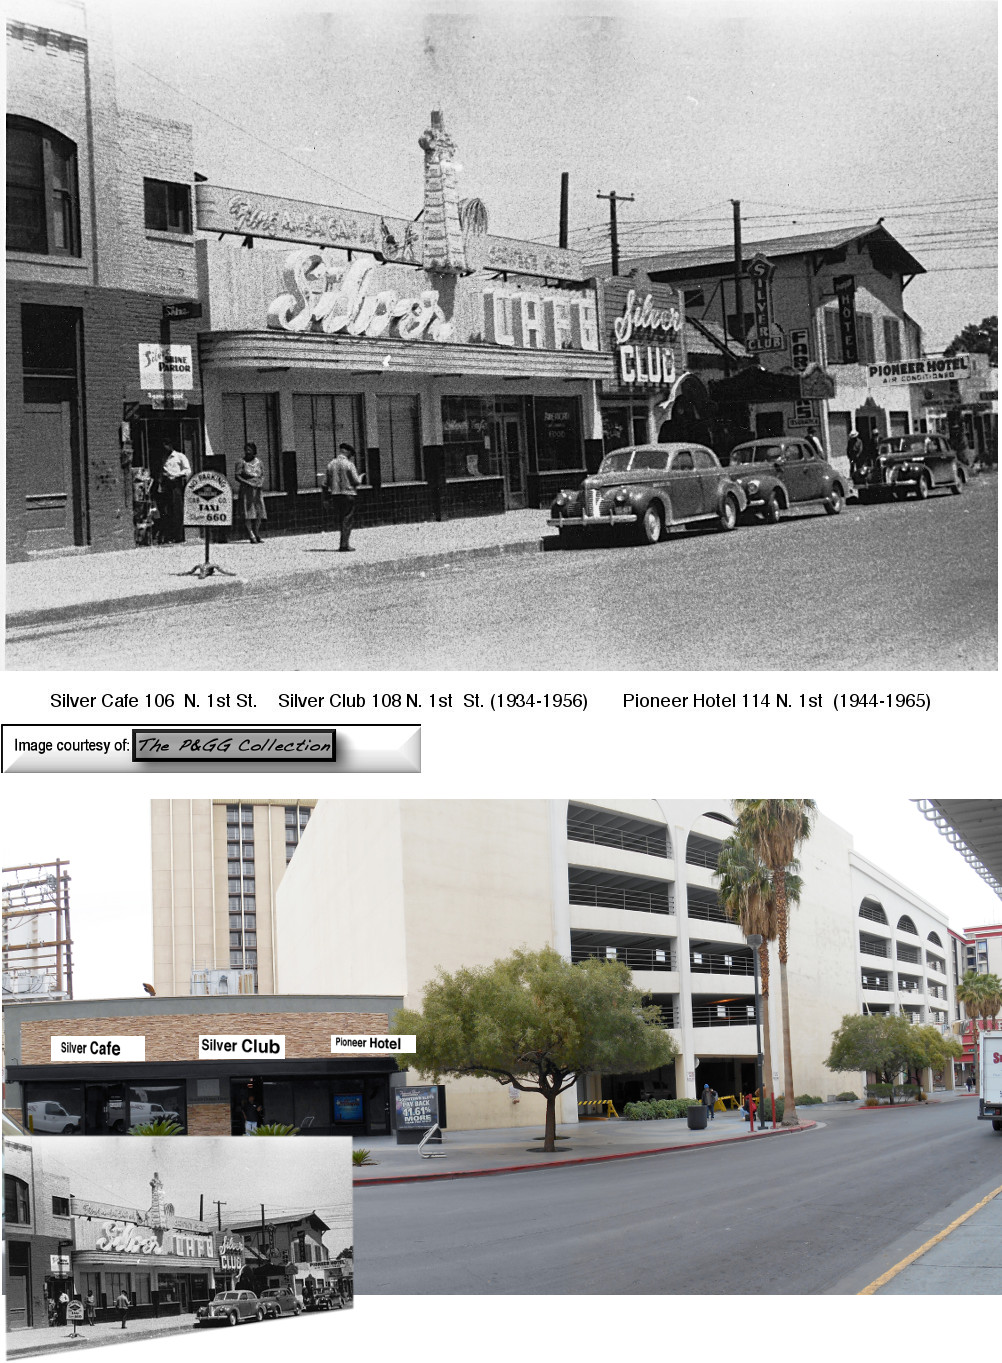 Photo of Pioneer Hotel at 114 N. 1st, Silver Club At 108 N 1st and Silver Cafe at 106 N. 1st.